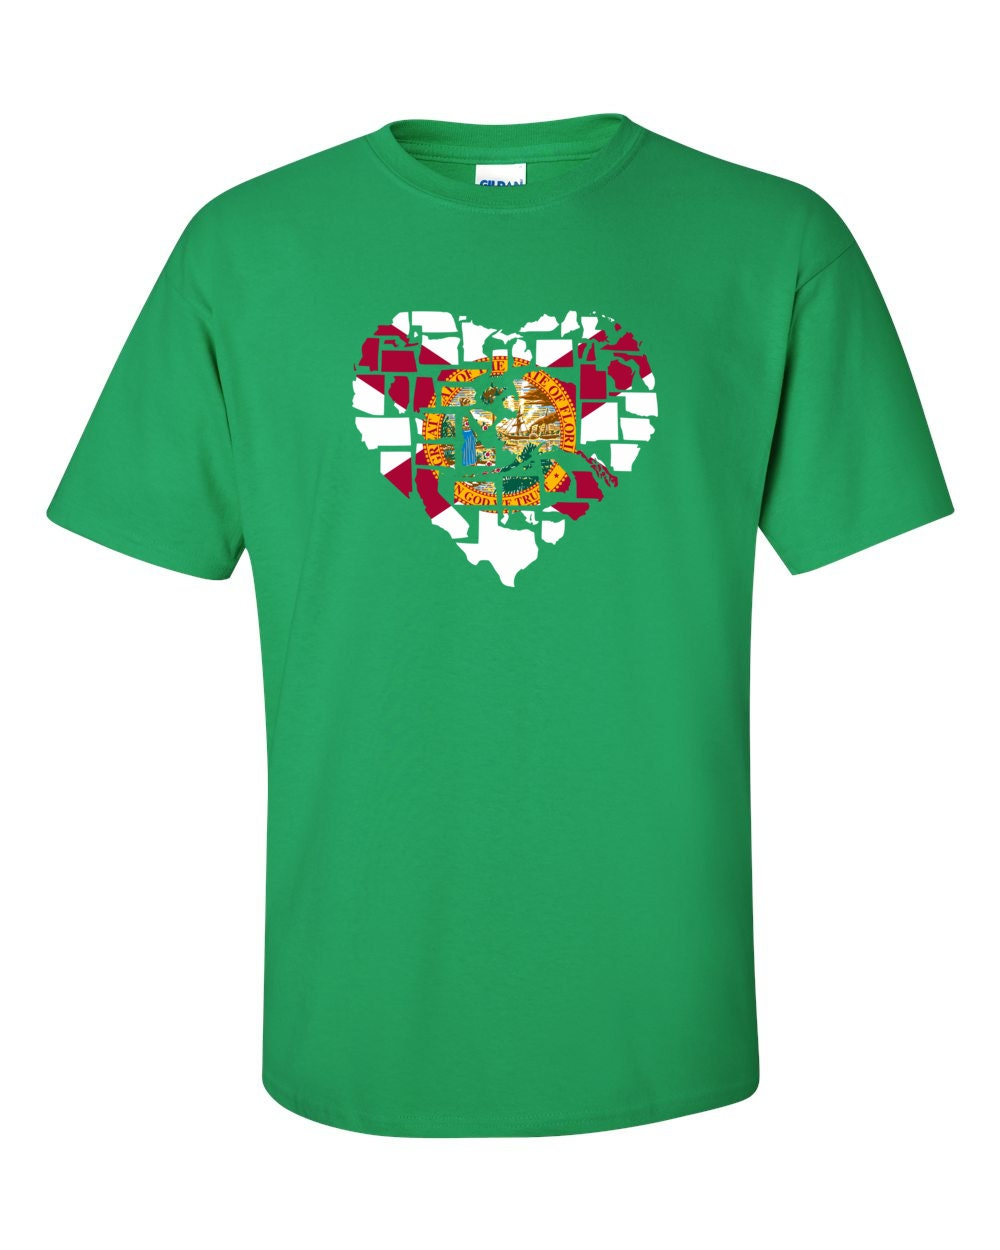 Florida T-shirt - No Matter Where I Am, Florida Is Alway In My Heart - My State Florida T-shirt